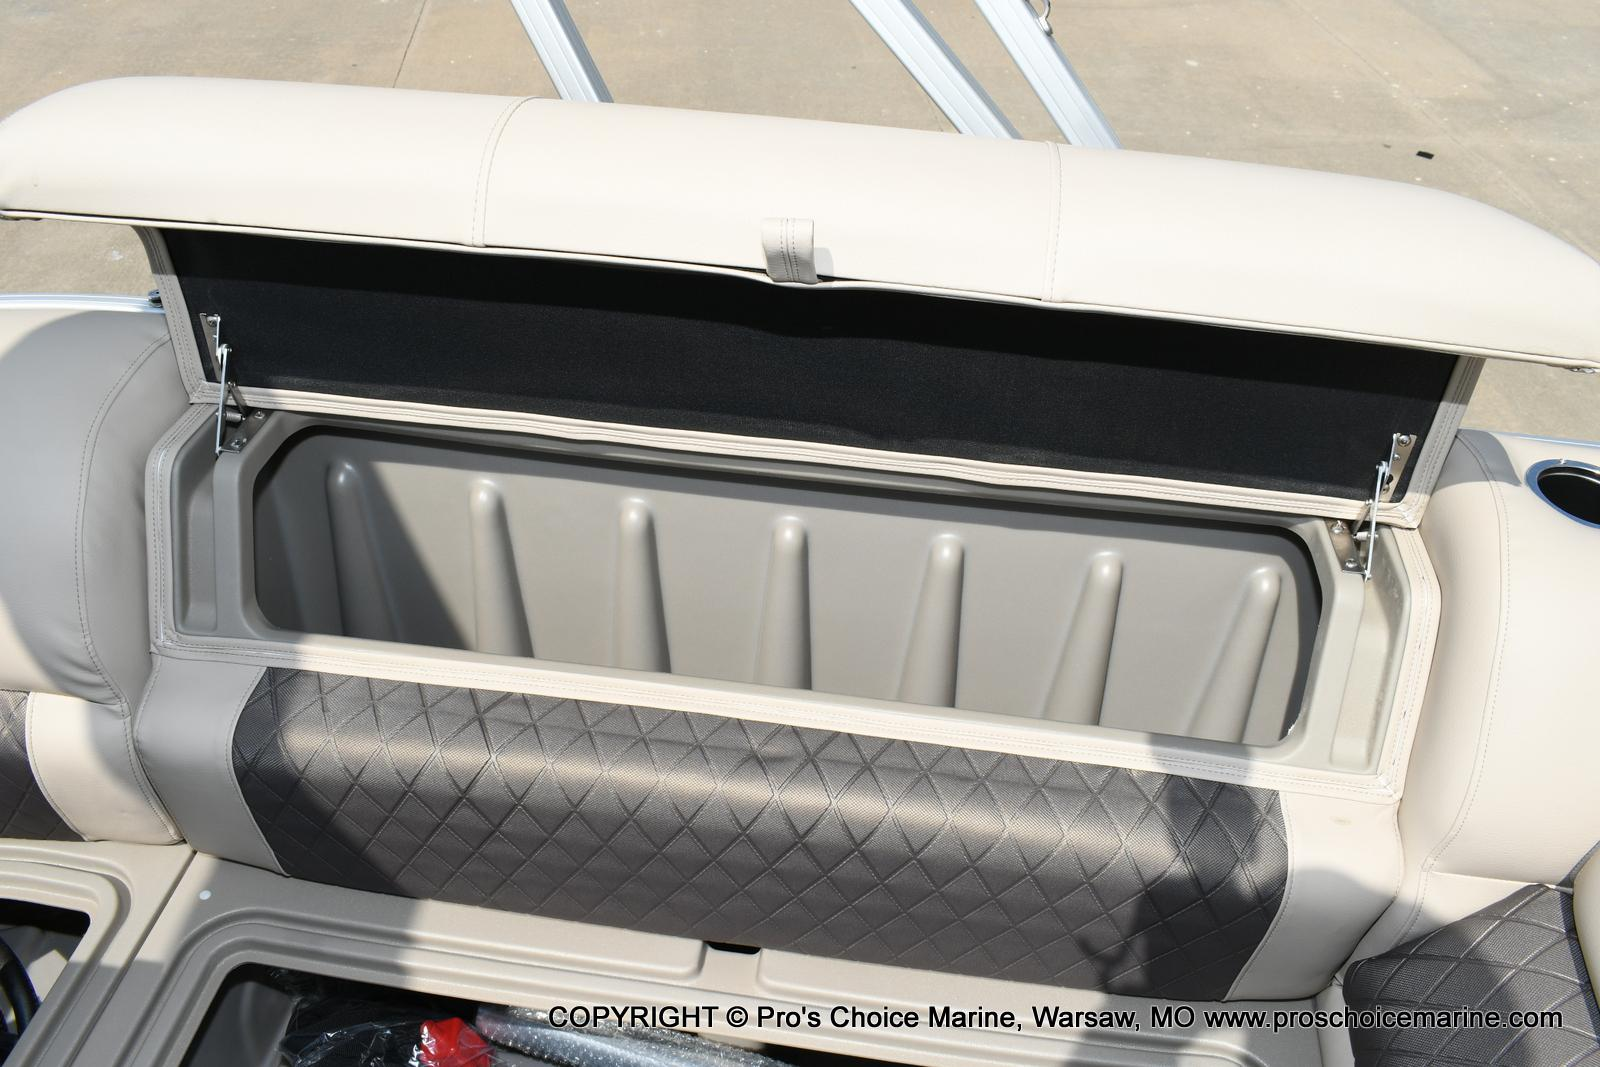 2020 Sun Tracker boat for sale, model of the boat is Party Barge 20 DLX & Image # 40 of 50